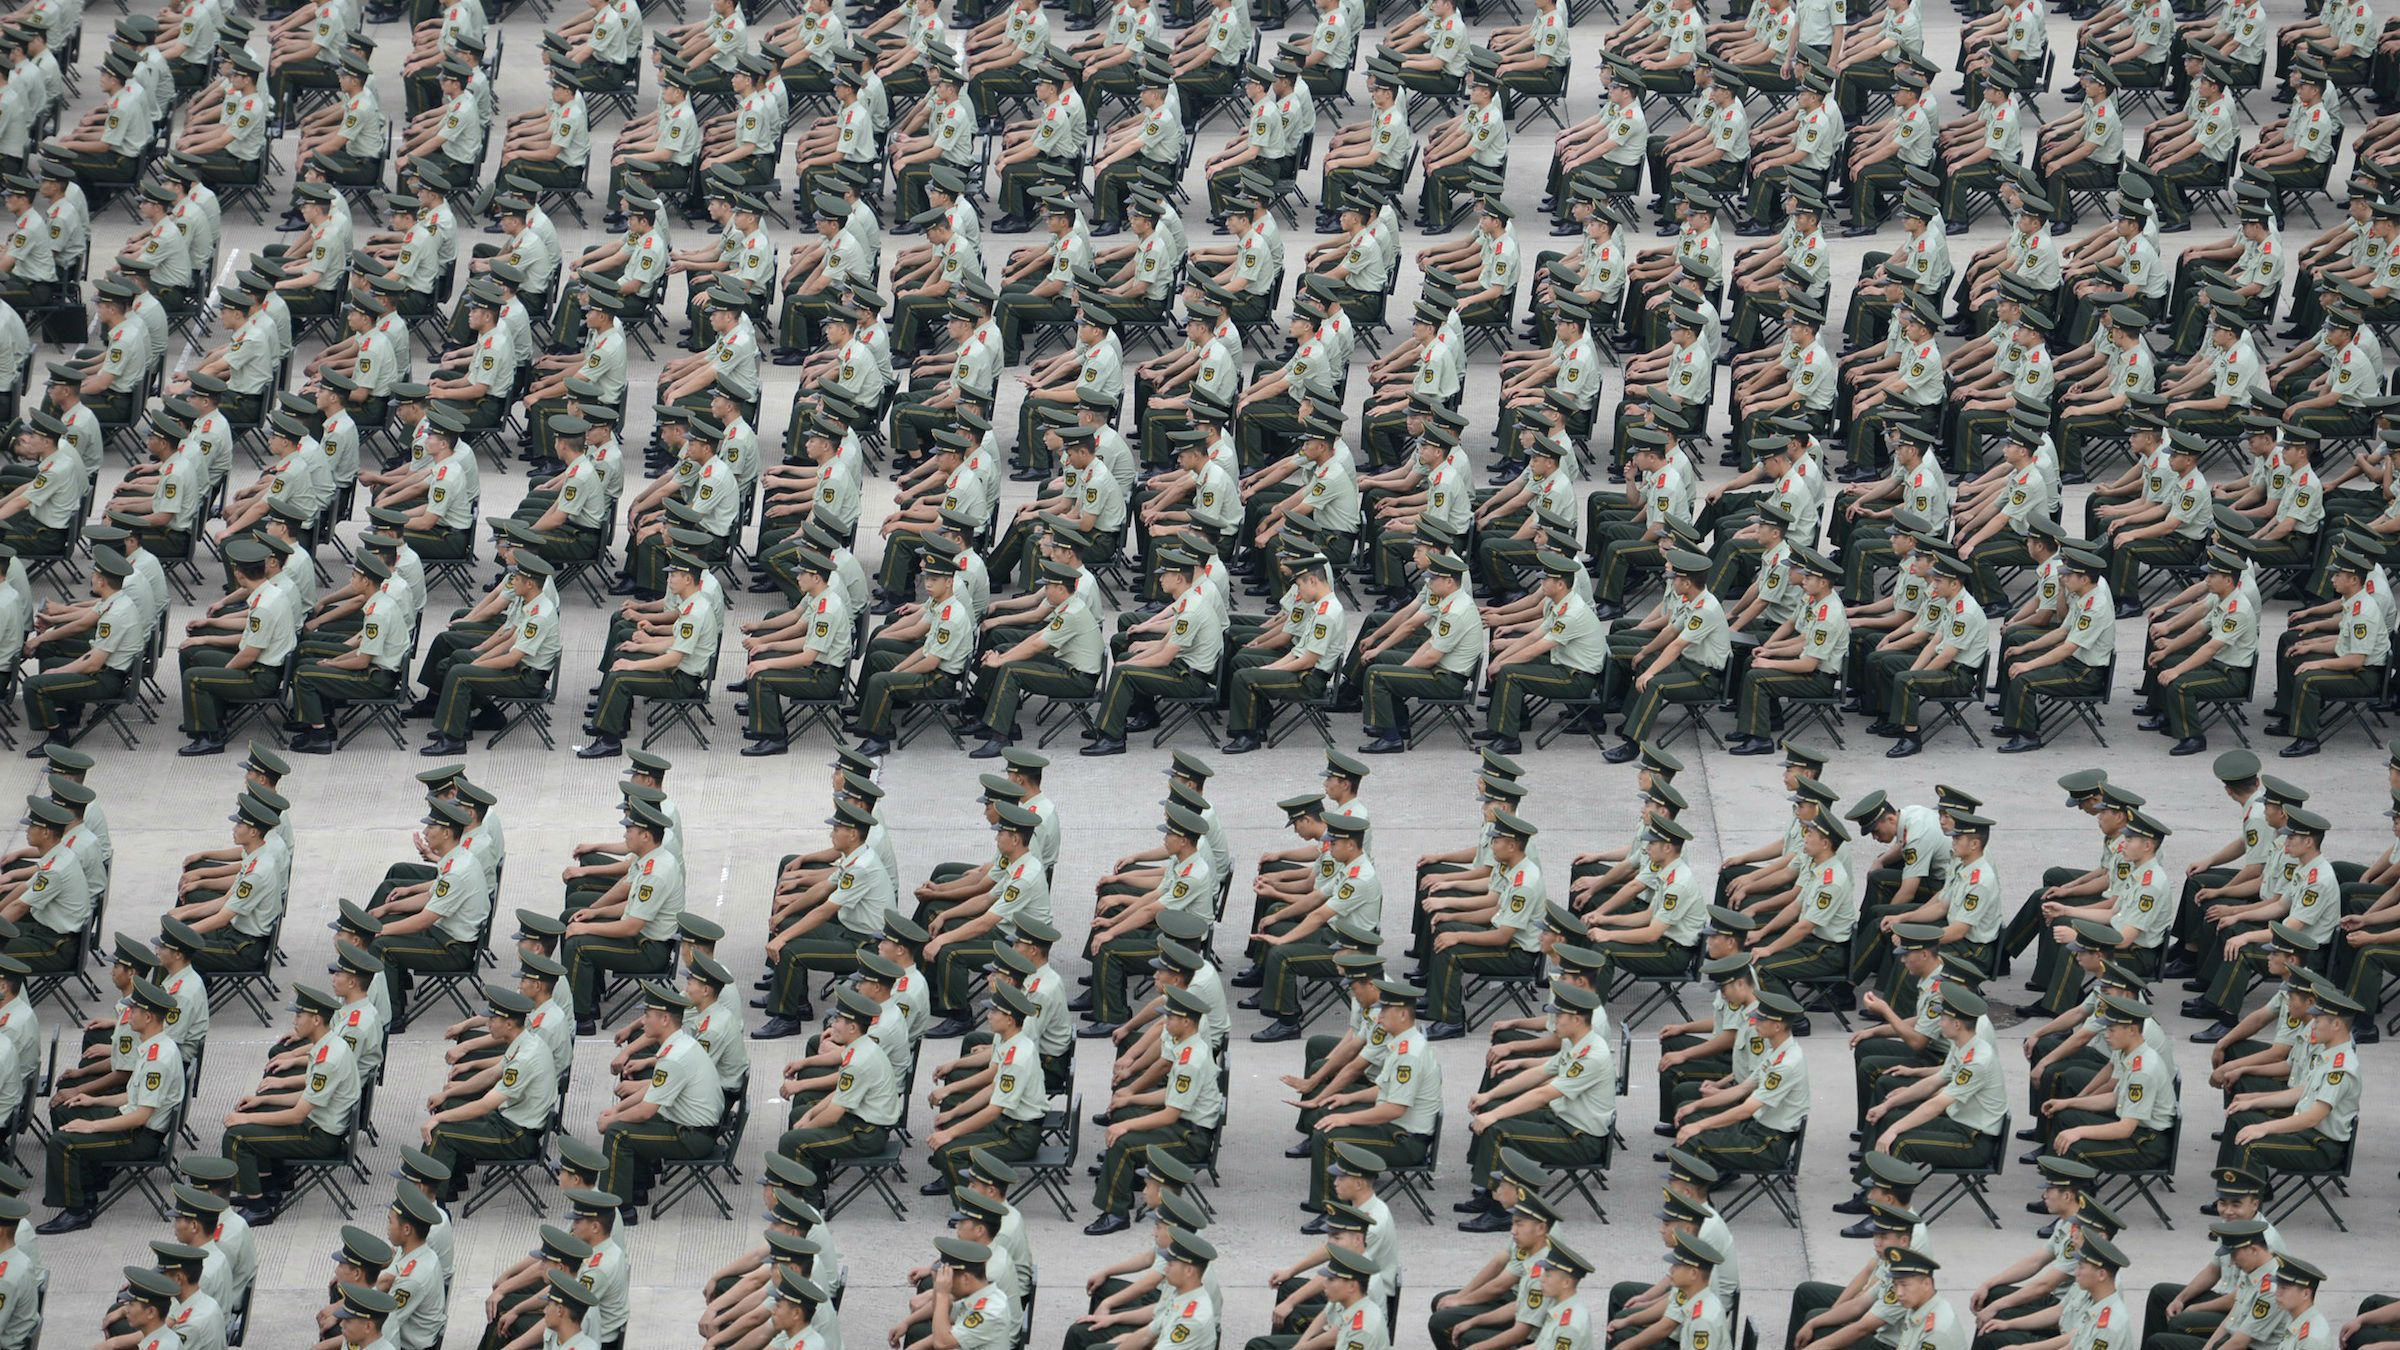 More than 1,000 Paramilitary policemen take part in an exercise in Nanjing, Jiangsu province, September